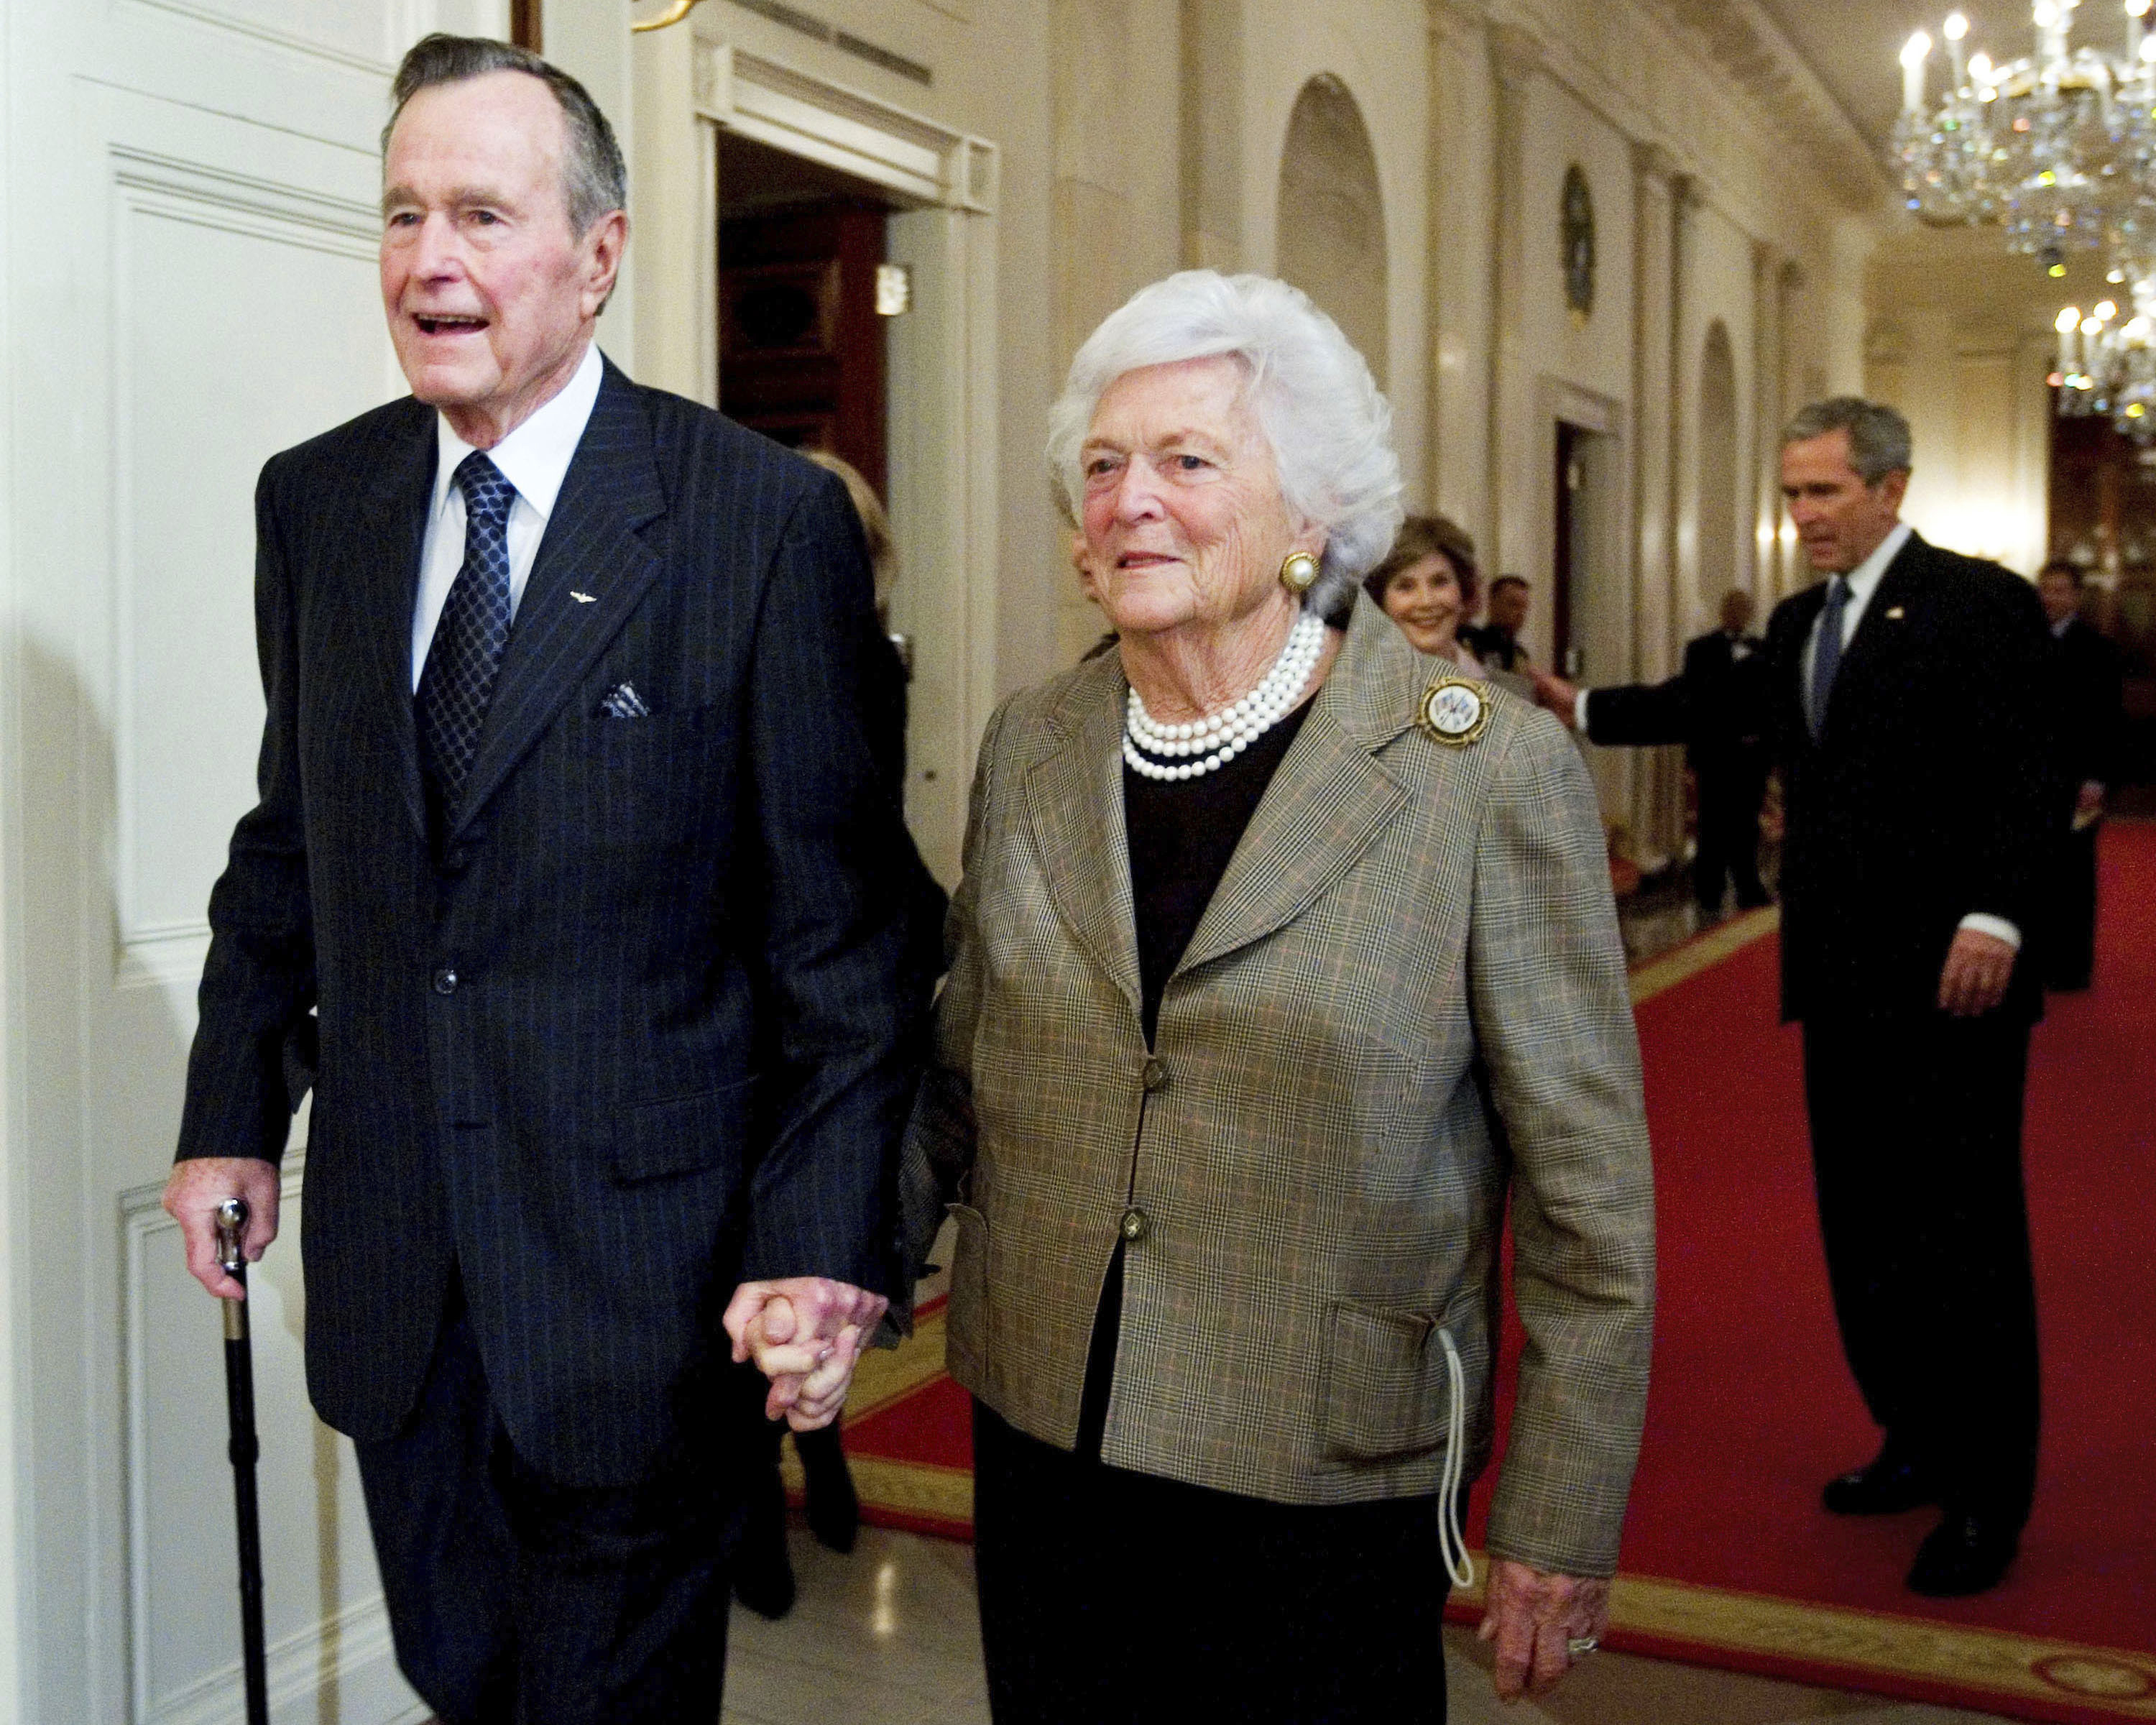 In this Jan. 7, 2009, photo, former President George H. W. Bush, left, walks with his wife, former first lady Barbara Bush, followed by their son, President George W. Bush, and his wife first lady Laura Bush, to a reception in honor of the Points of Light Institute, in the East Room at the White House in Washington. (AP Photo/Manuel Balce Ceneta, File)